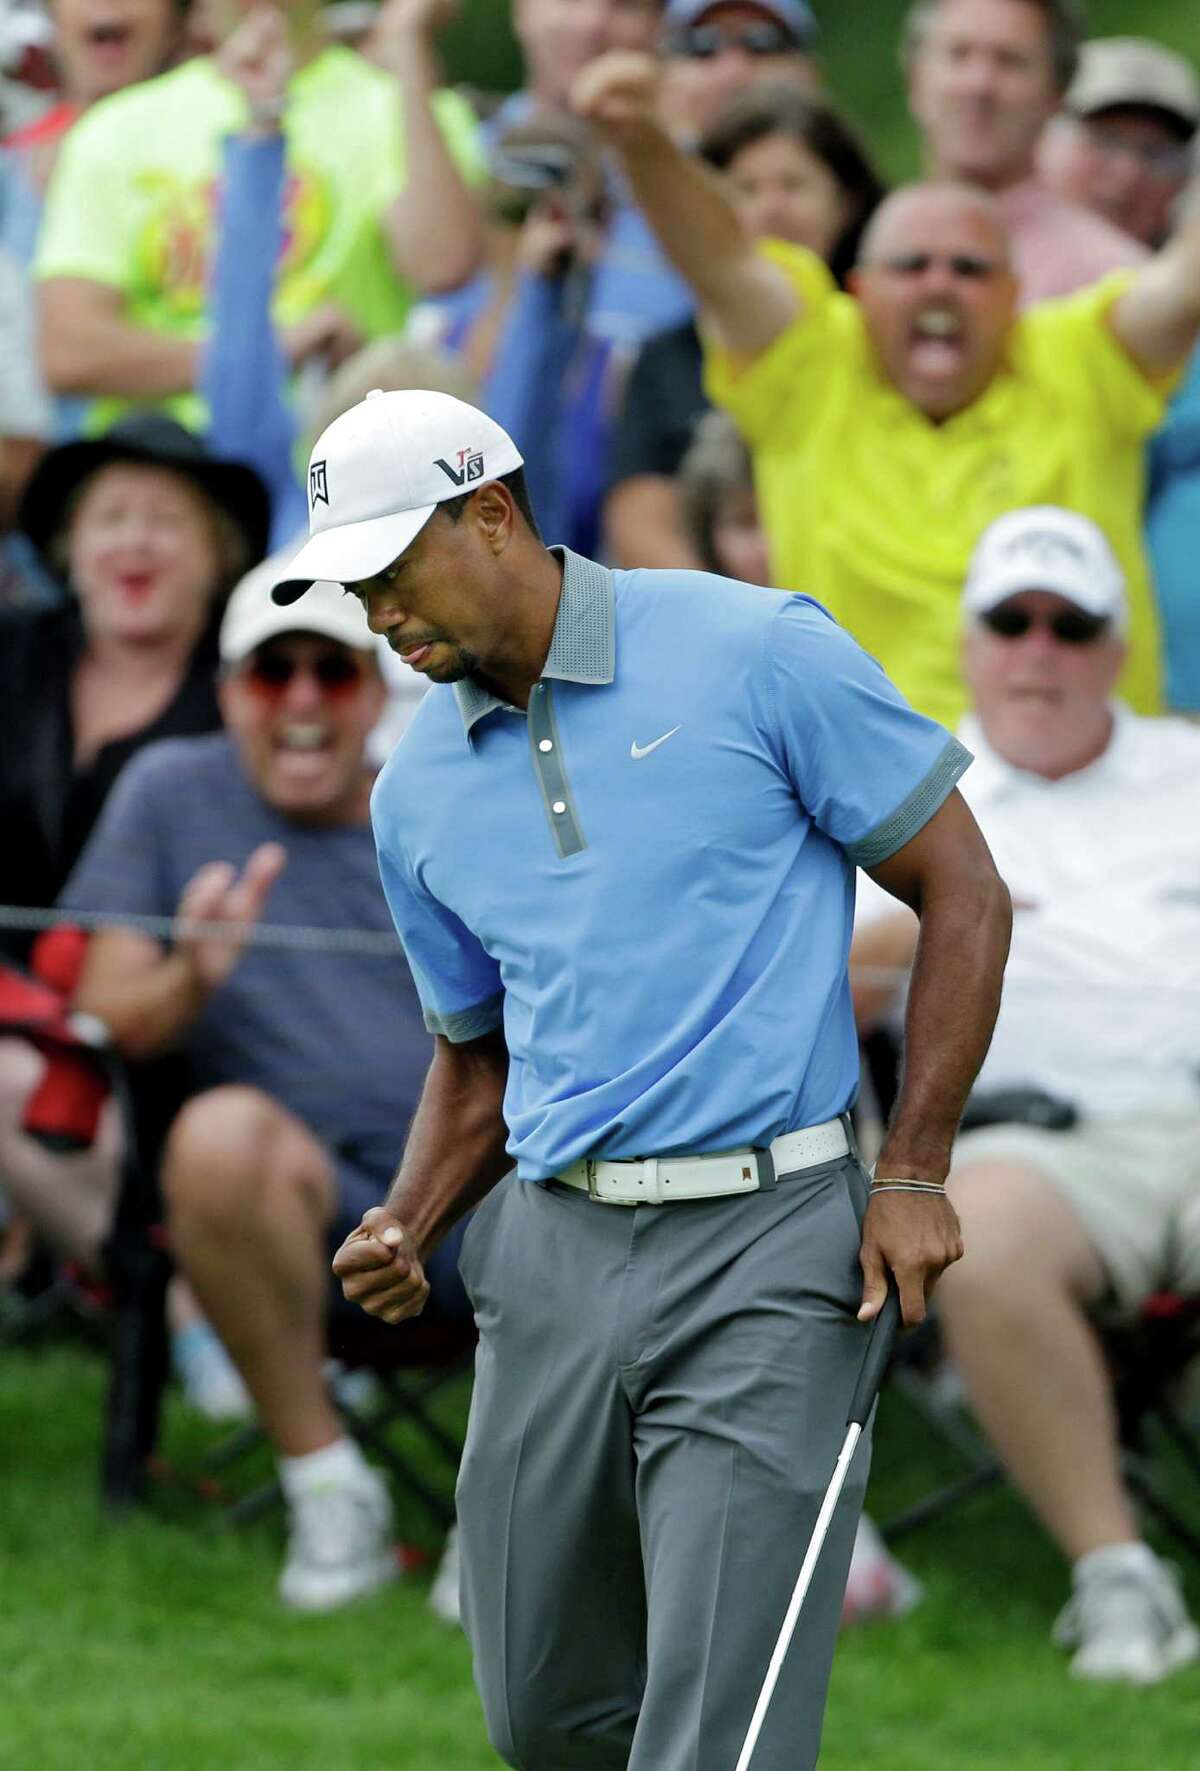 On Friday at the Bridgestone Invitatonal, Tiger Woods shot a 61 for just the fourth time in his career.